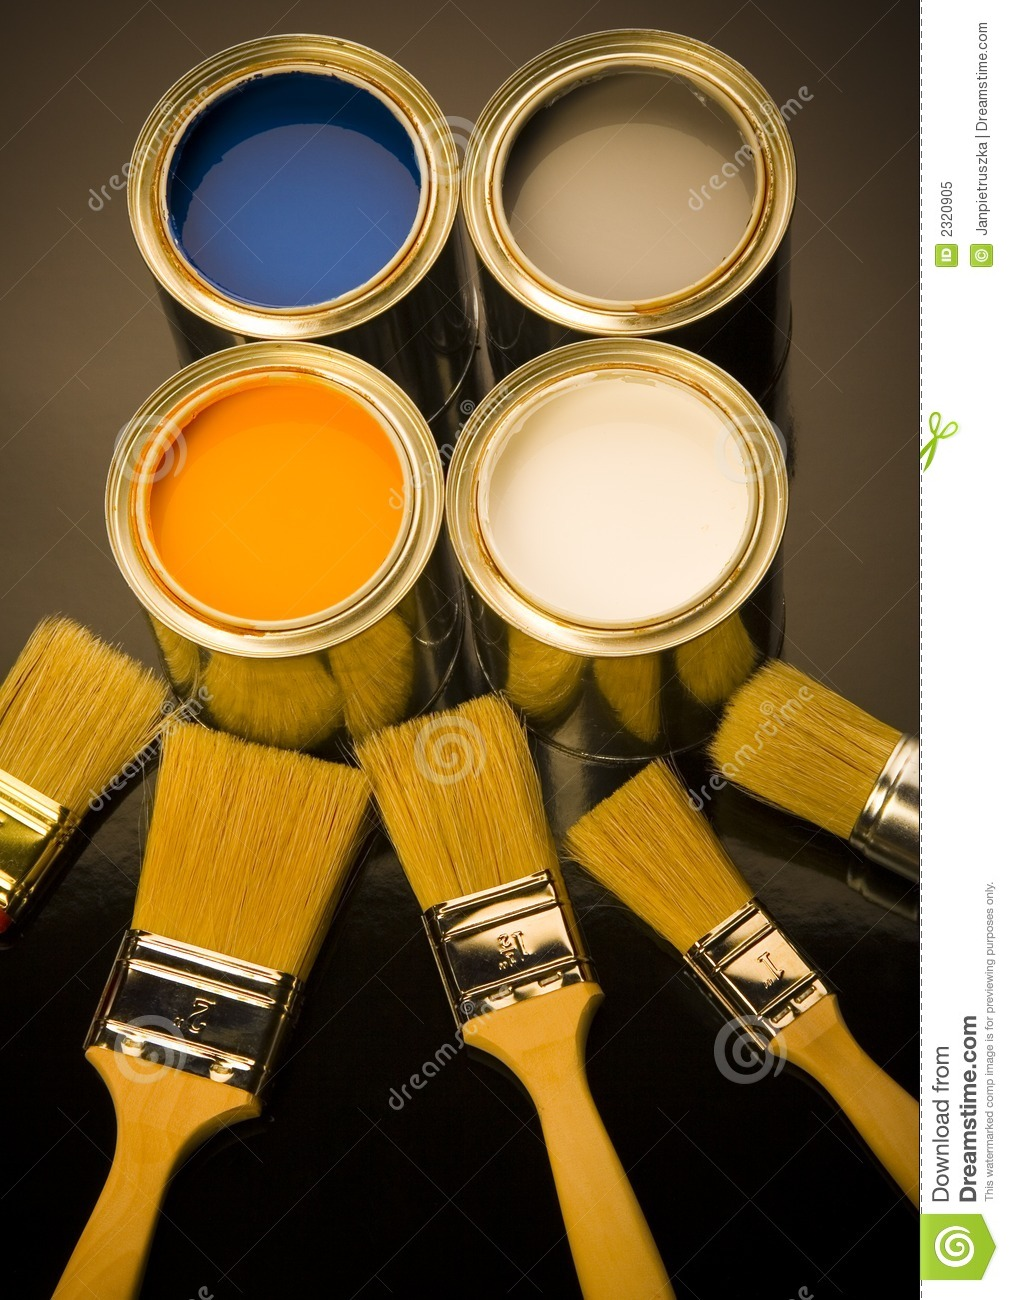 Paint and brush royalty free stock photo image 2320905 for Free photo paint